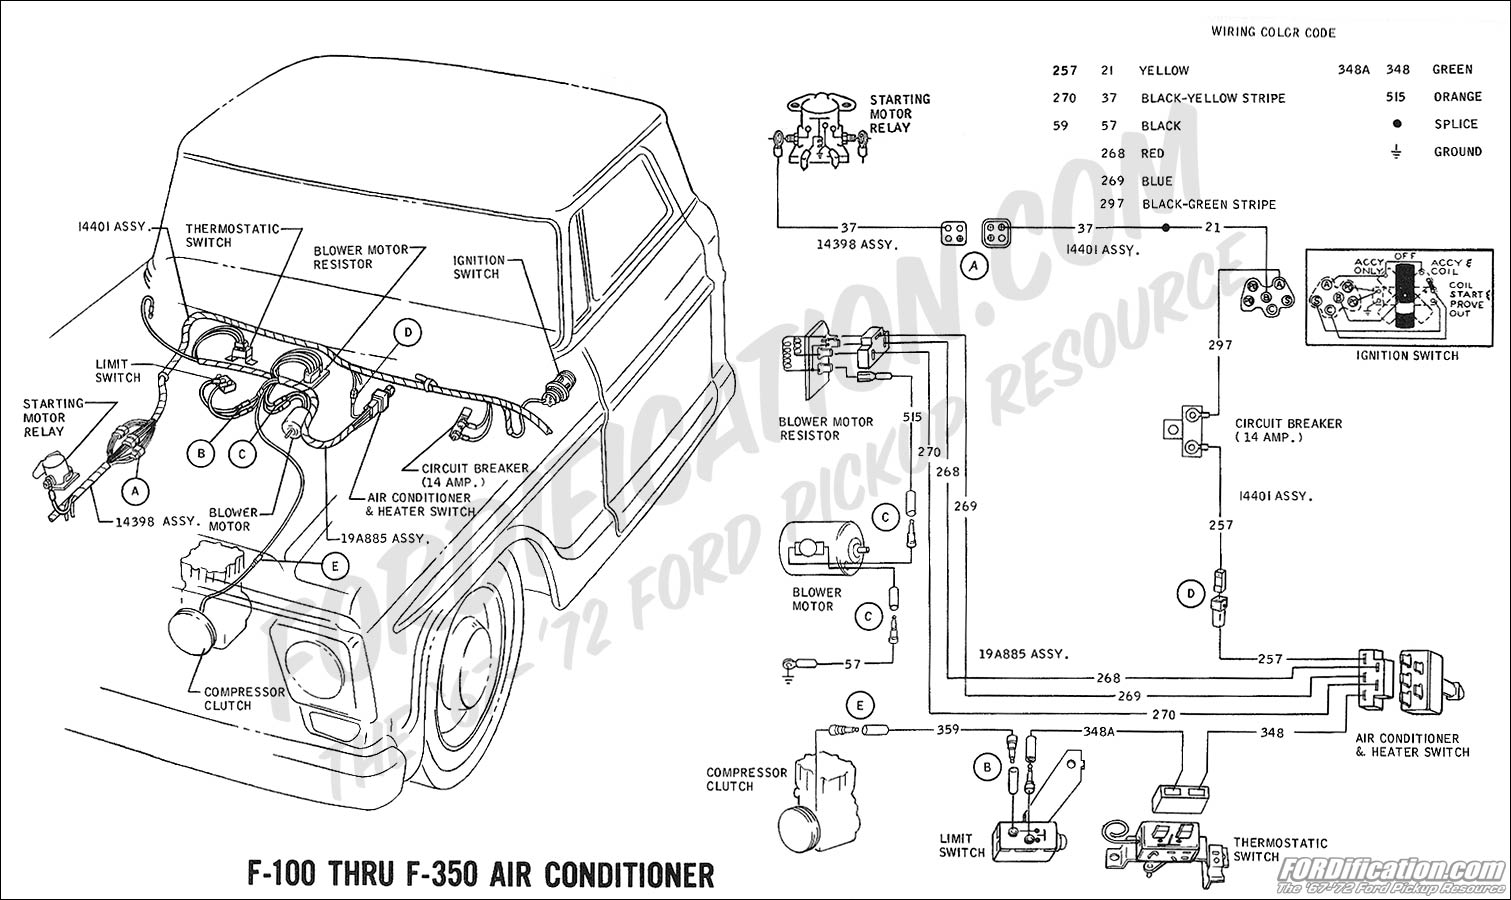 wiring_69ac 1999 ford f 150 radio wiring diagram chevy truck wiring diagram 1999 cadillac deville radio wiring diagram at aneh.co